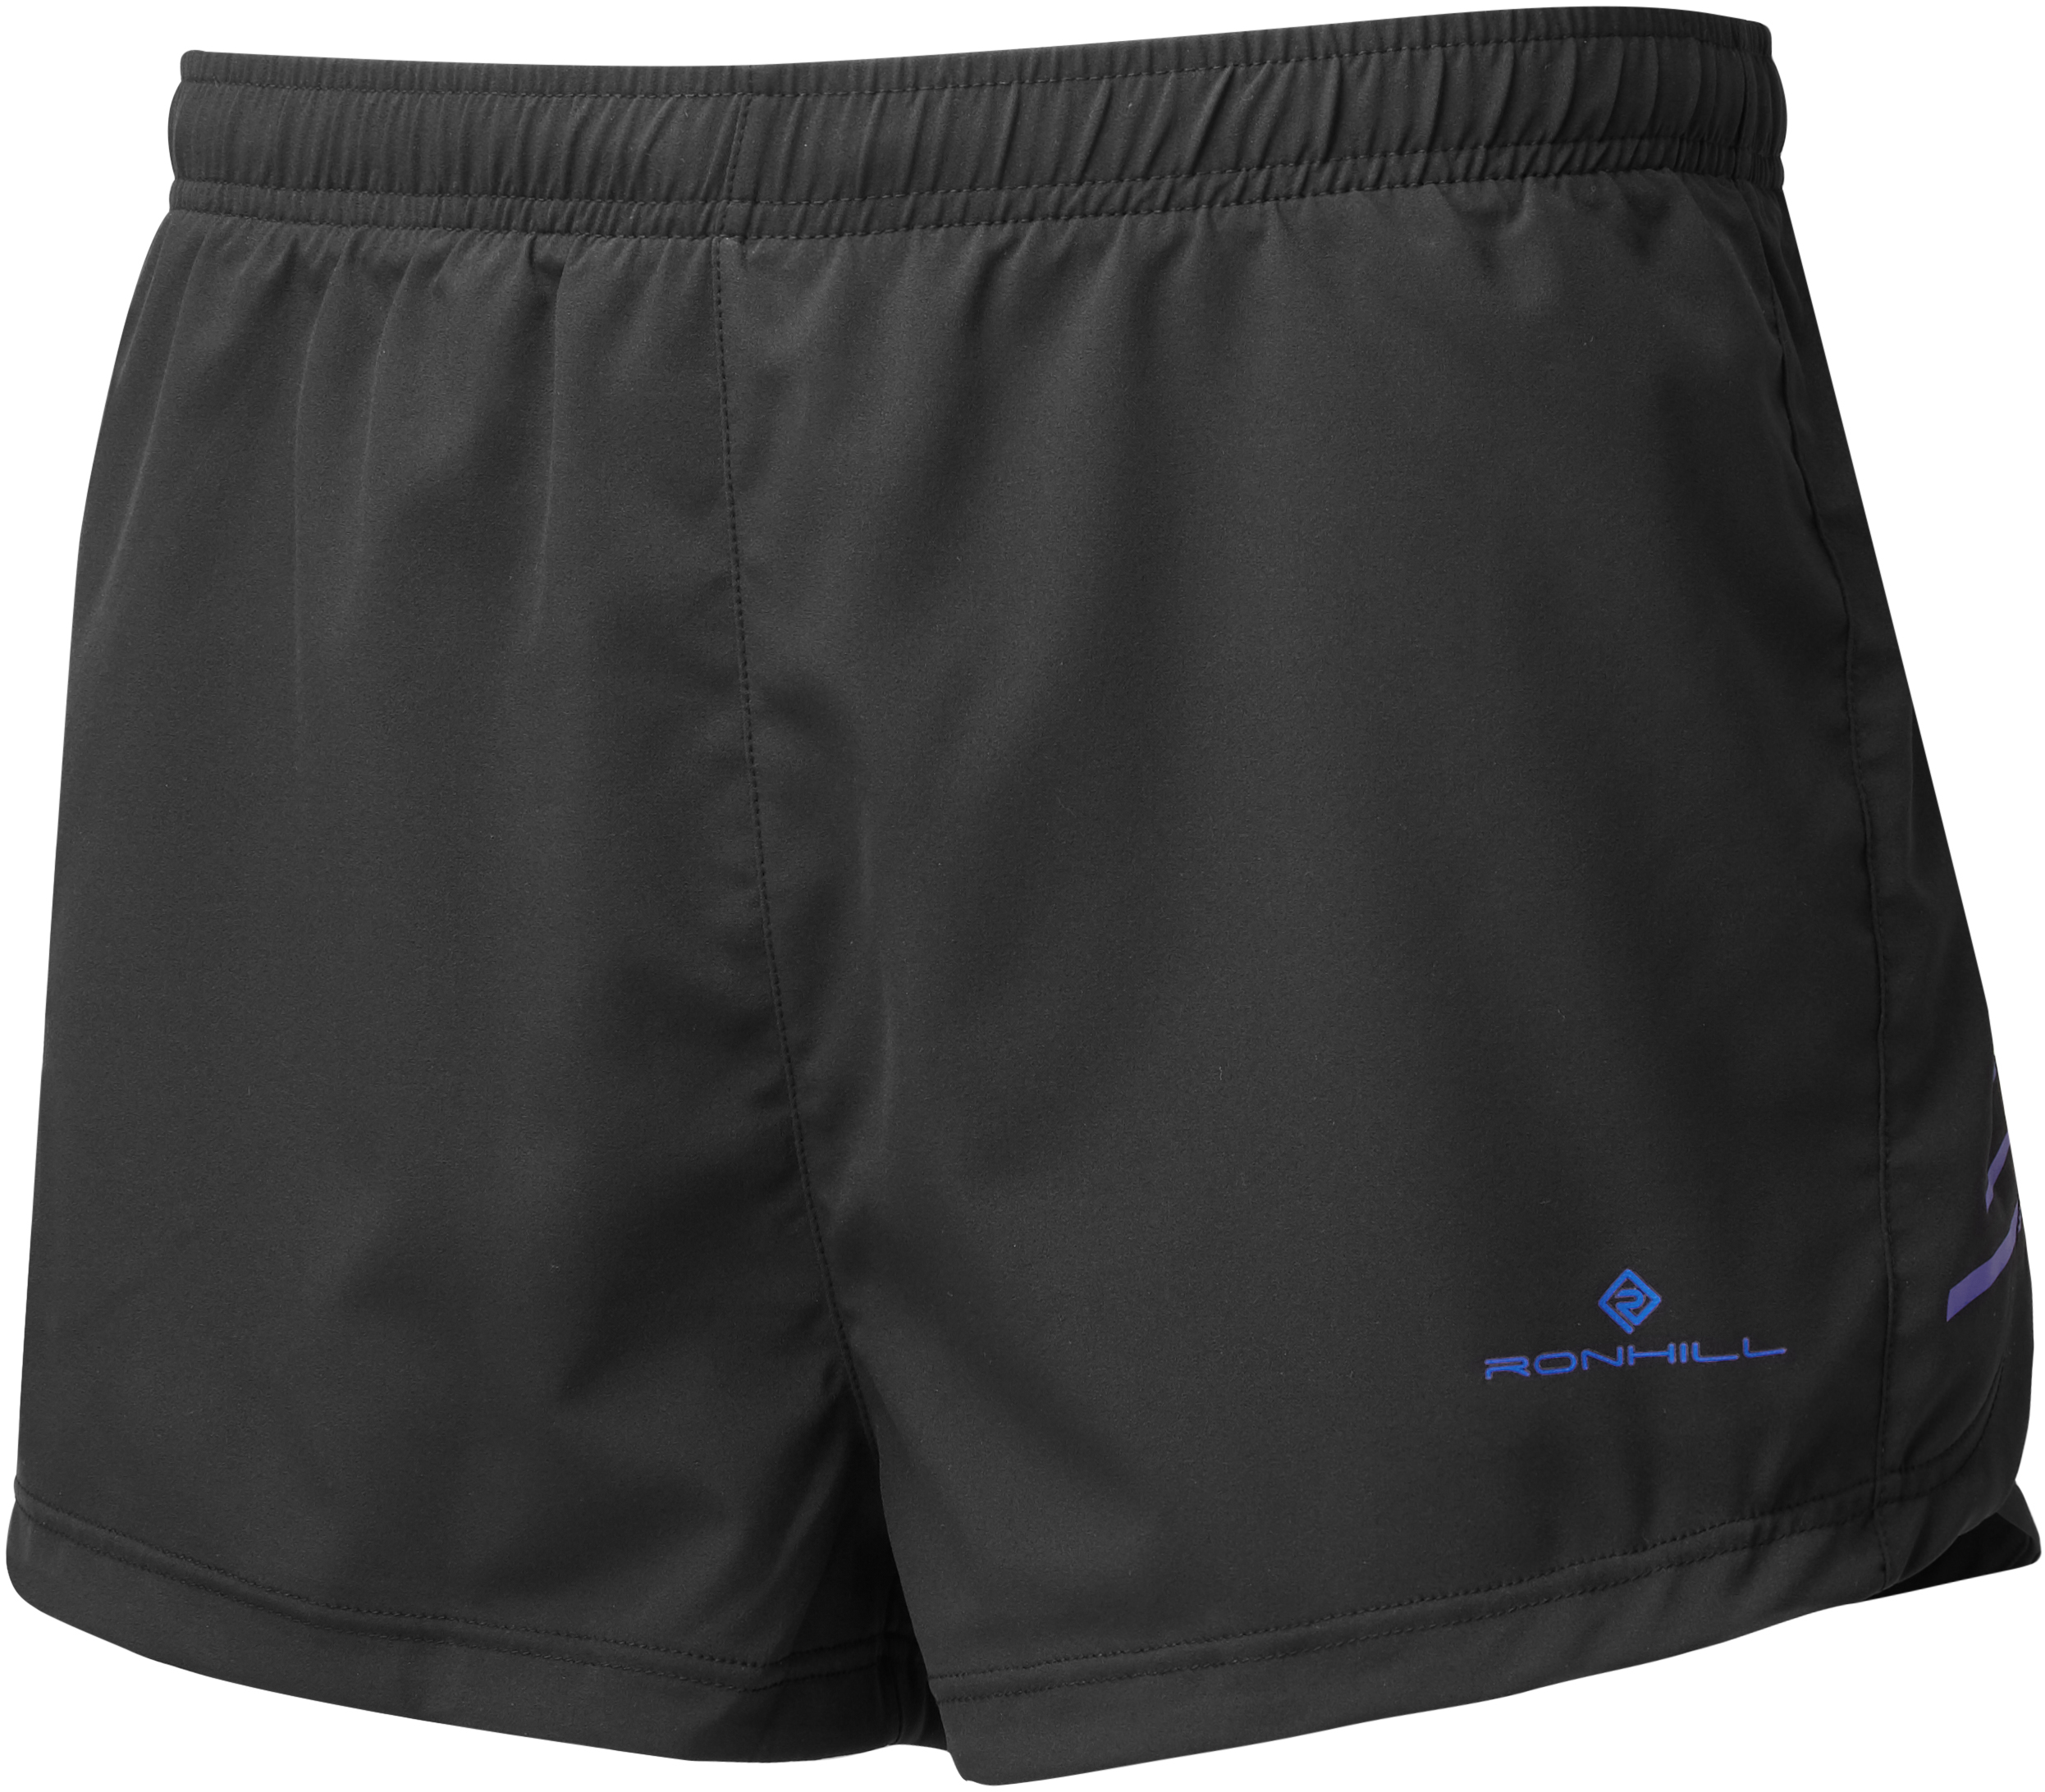 Ronhill Stride Cargo Racer Short | Trousers